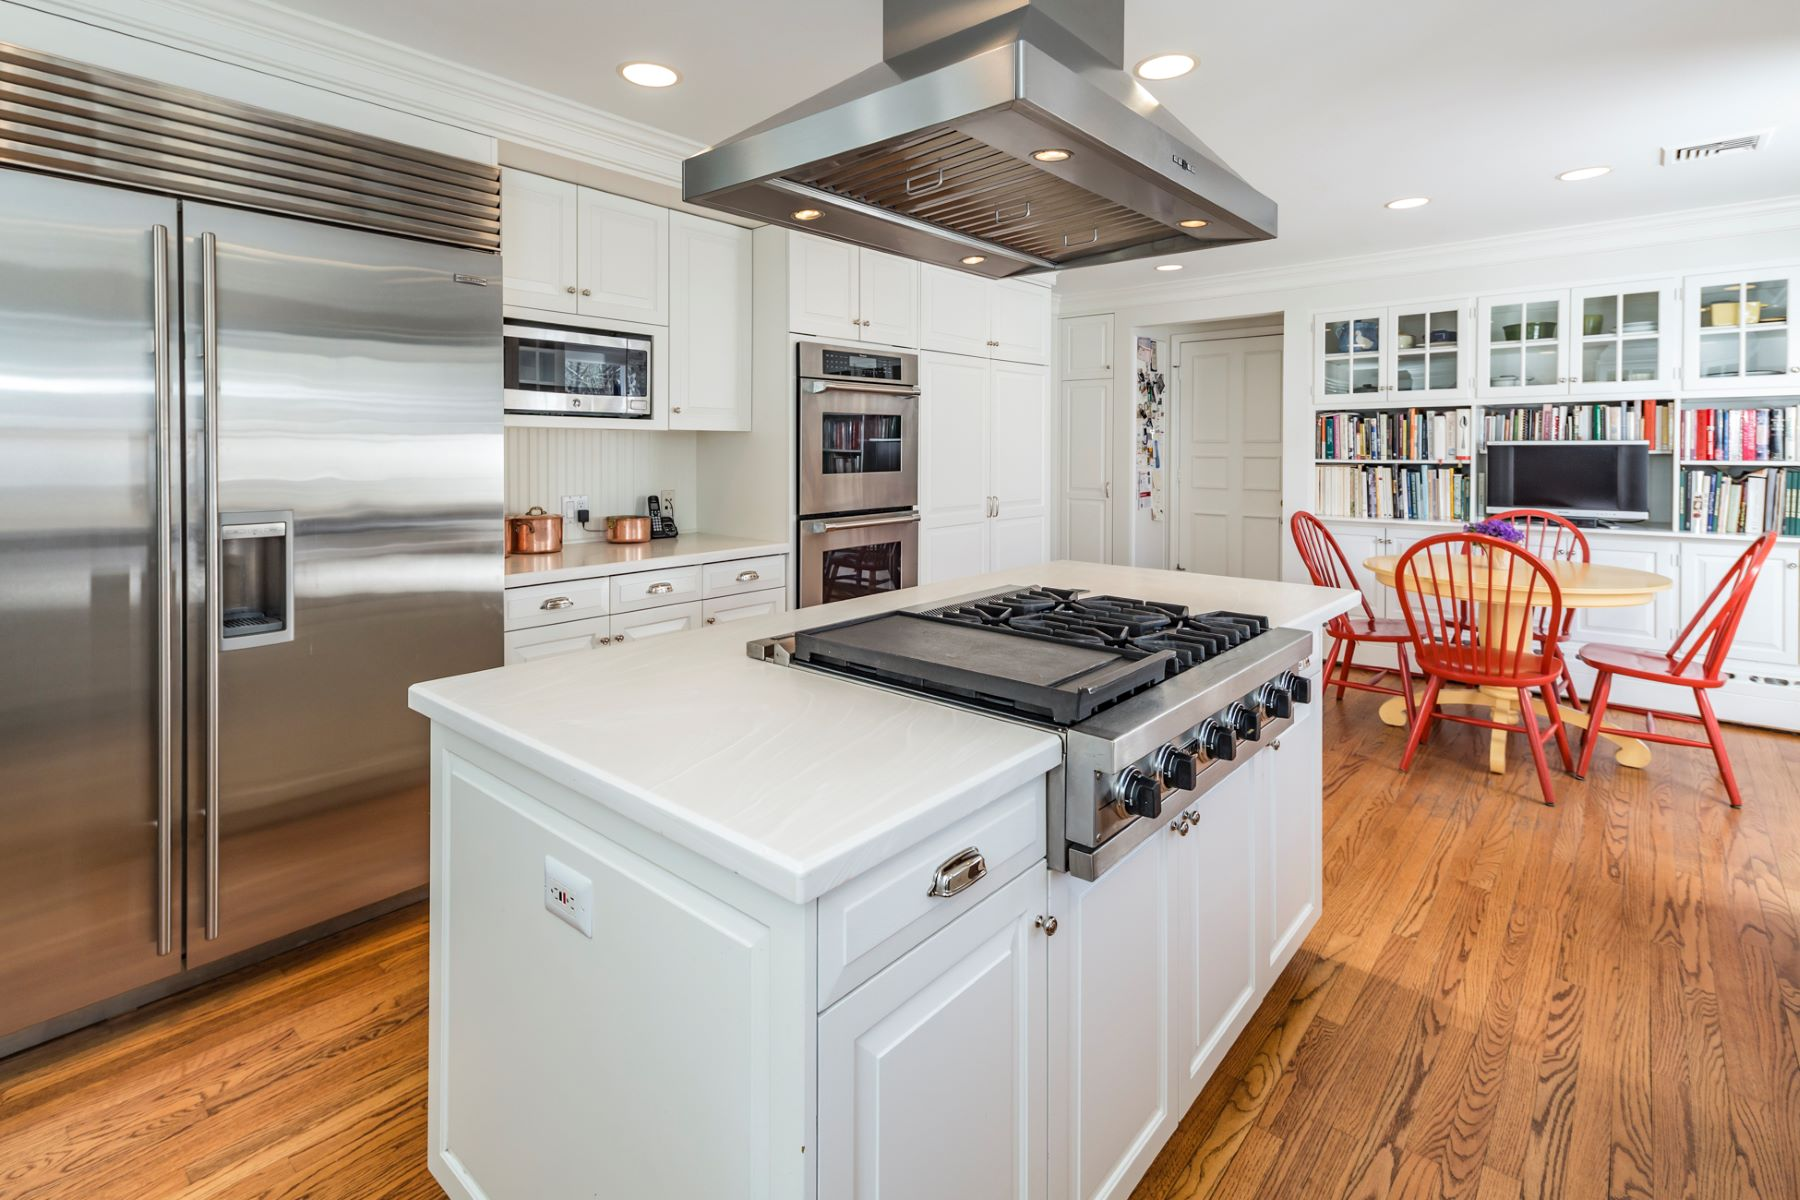 Additional photo for property listing at Gracious, Spacious, And Absolutely Turn-key! 37 Pheasant Hill Road, Princeton, New Jersey 08540 United States